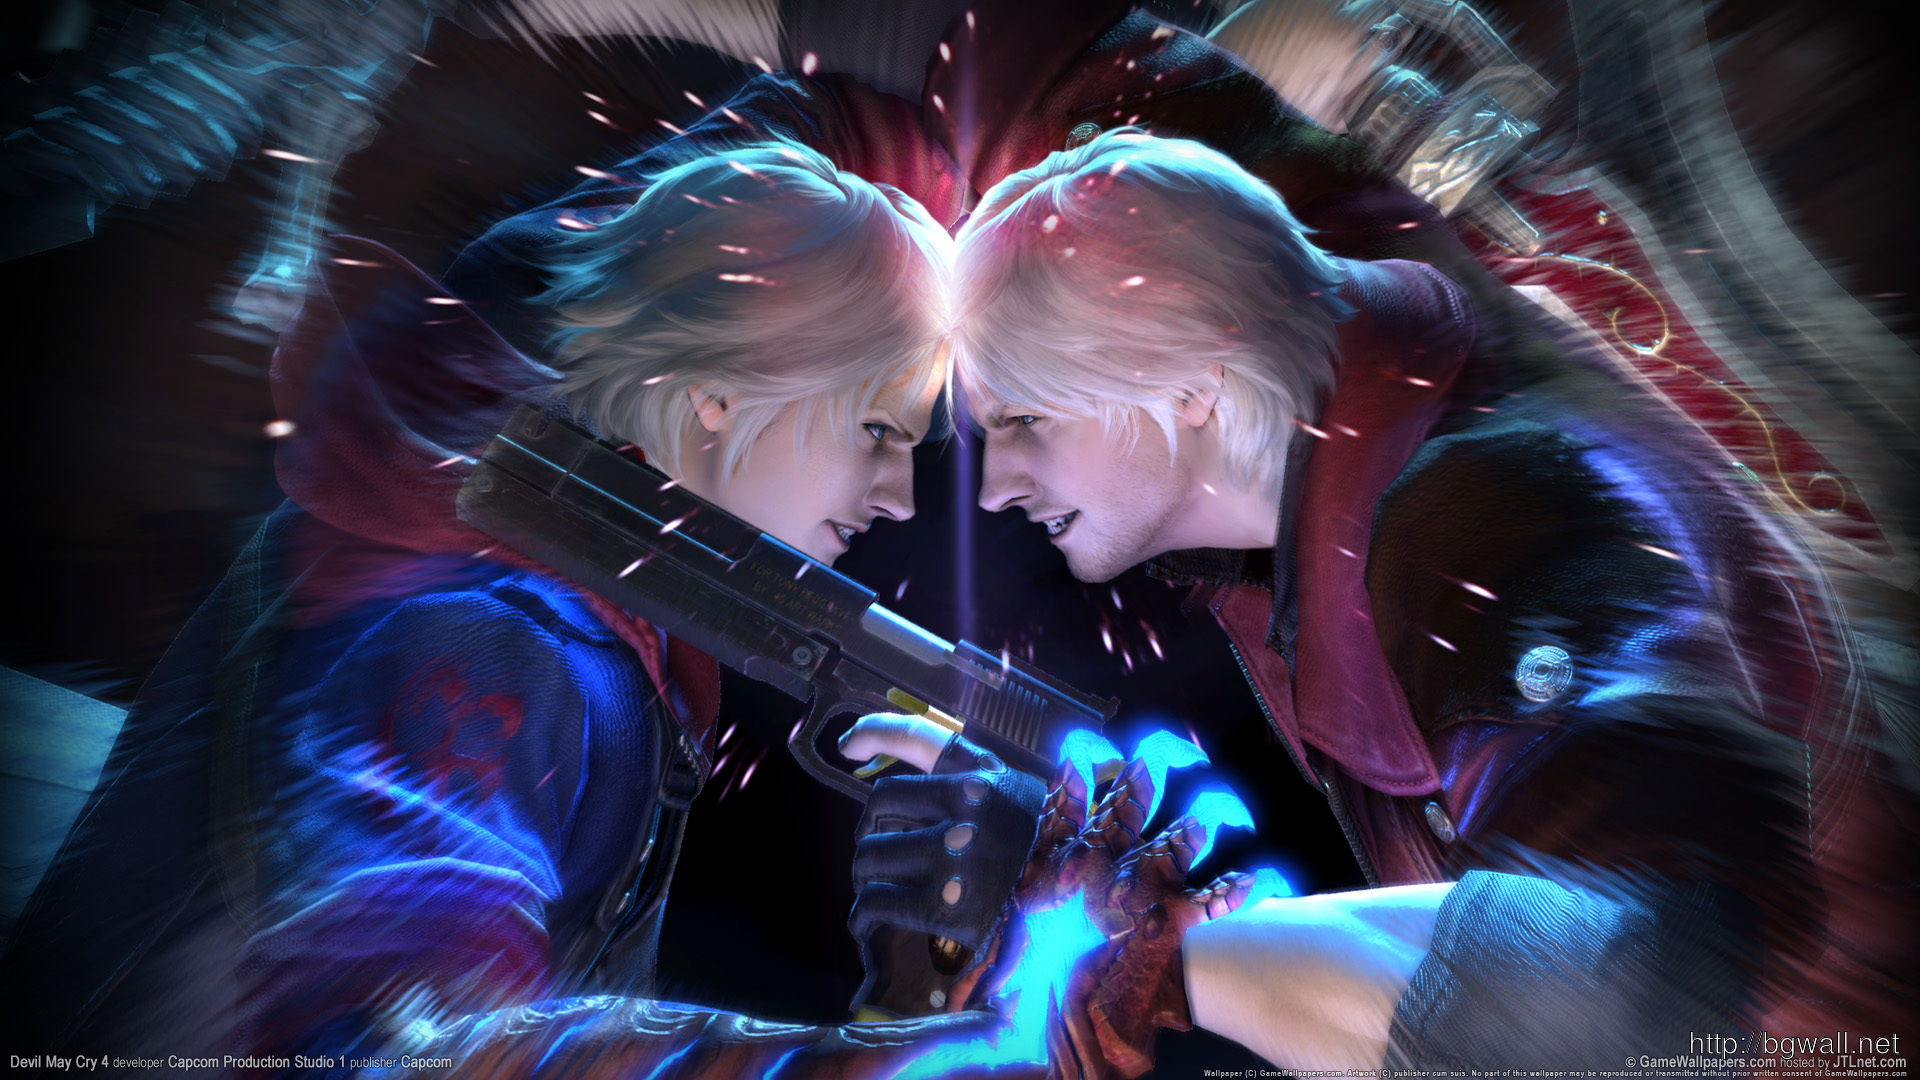 Download Devil May Cry 4 Hd Games Wallpapers High Resolution Full Size